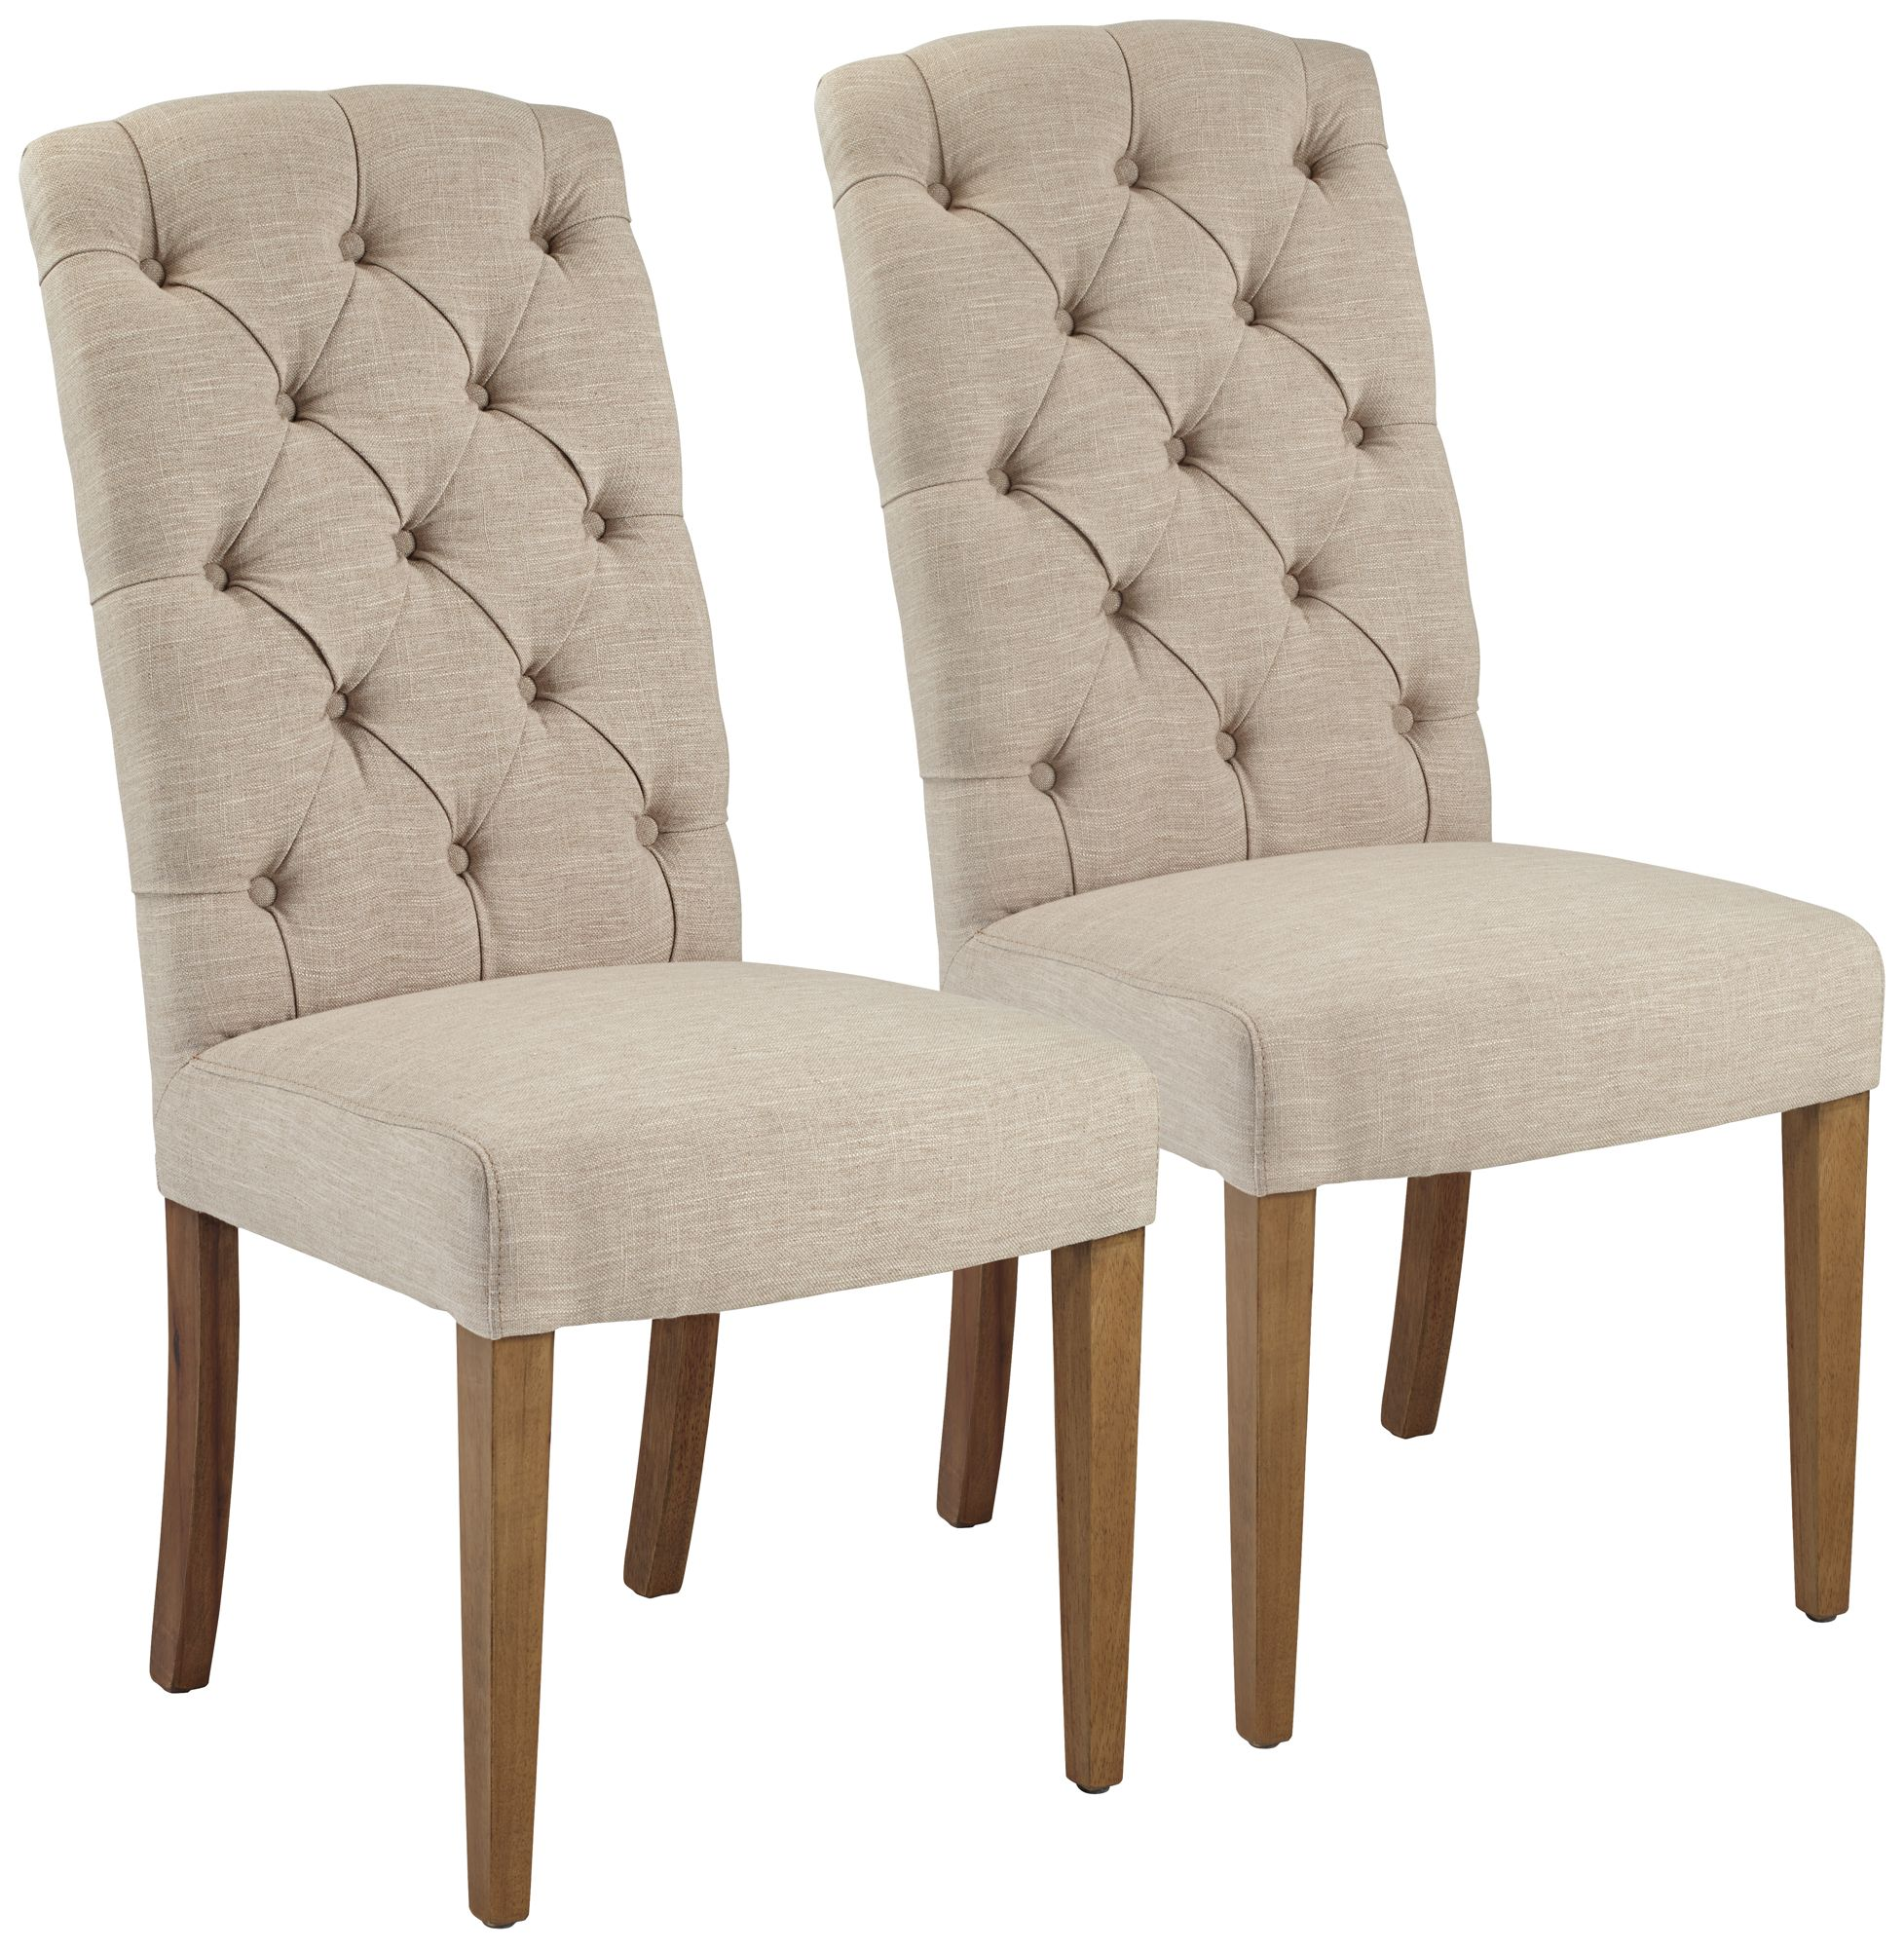 Superior Lydia Natural Linen Armless Accent Chair Set Of 2